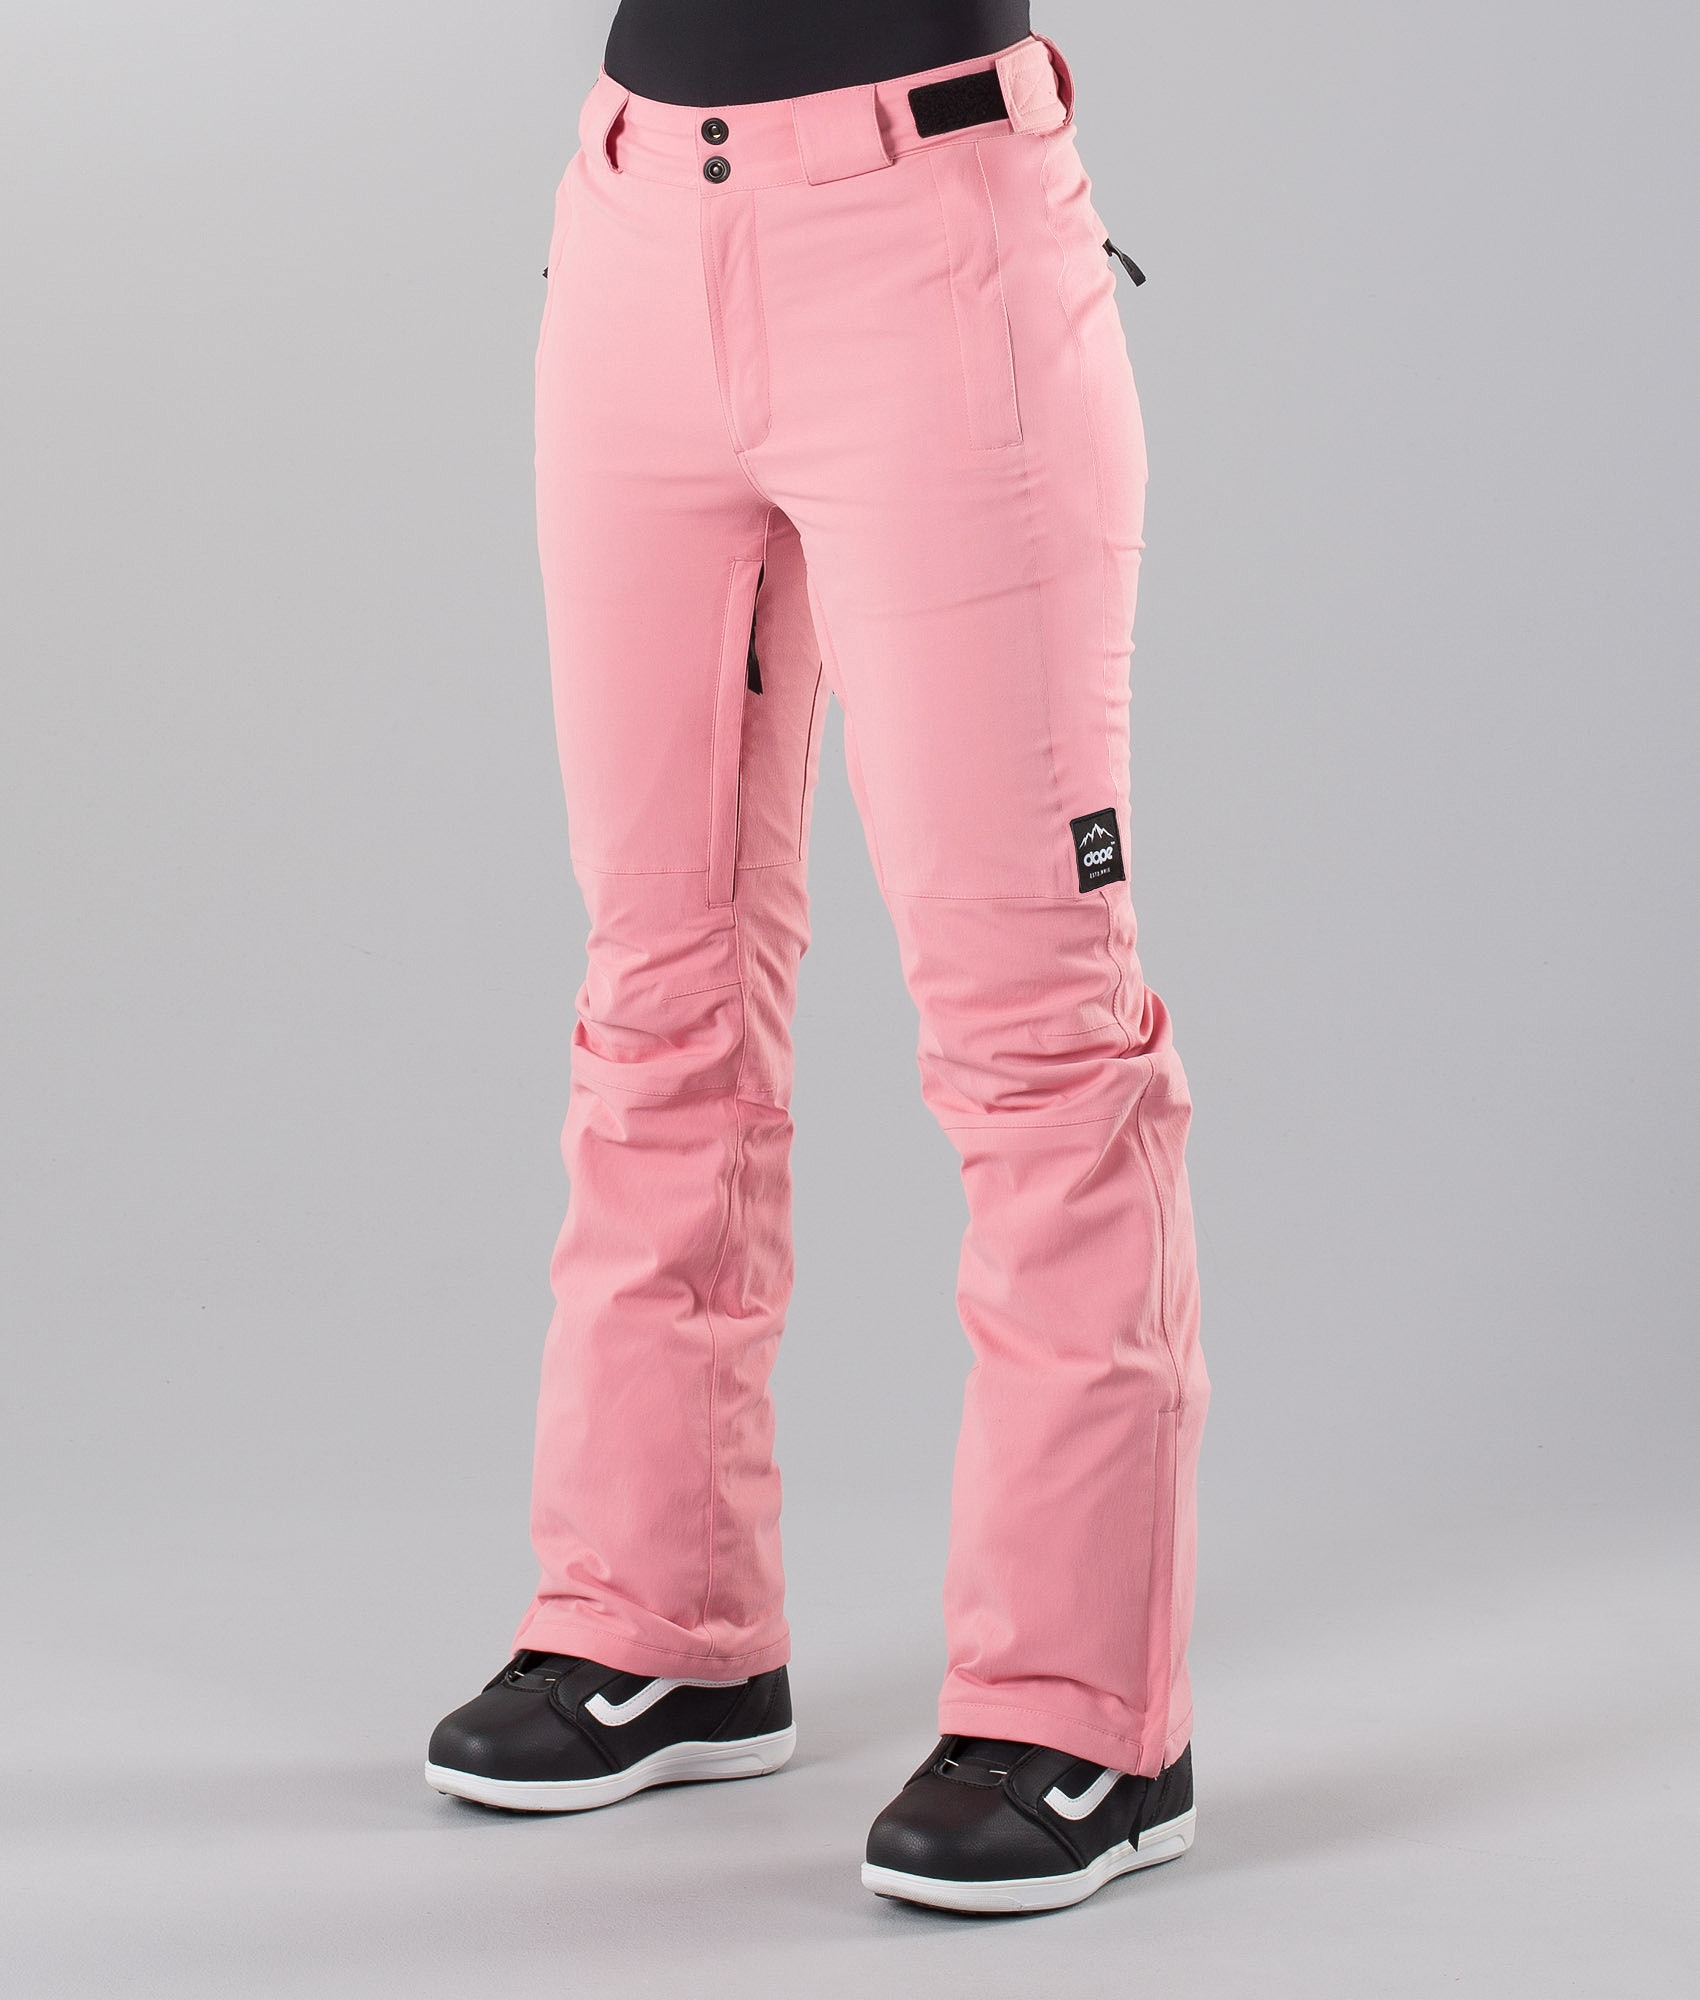 a24b958768 Dope Con Snow Pants Pink - Ridestore.com